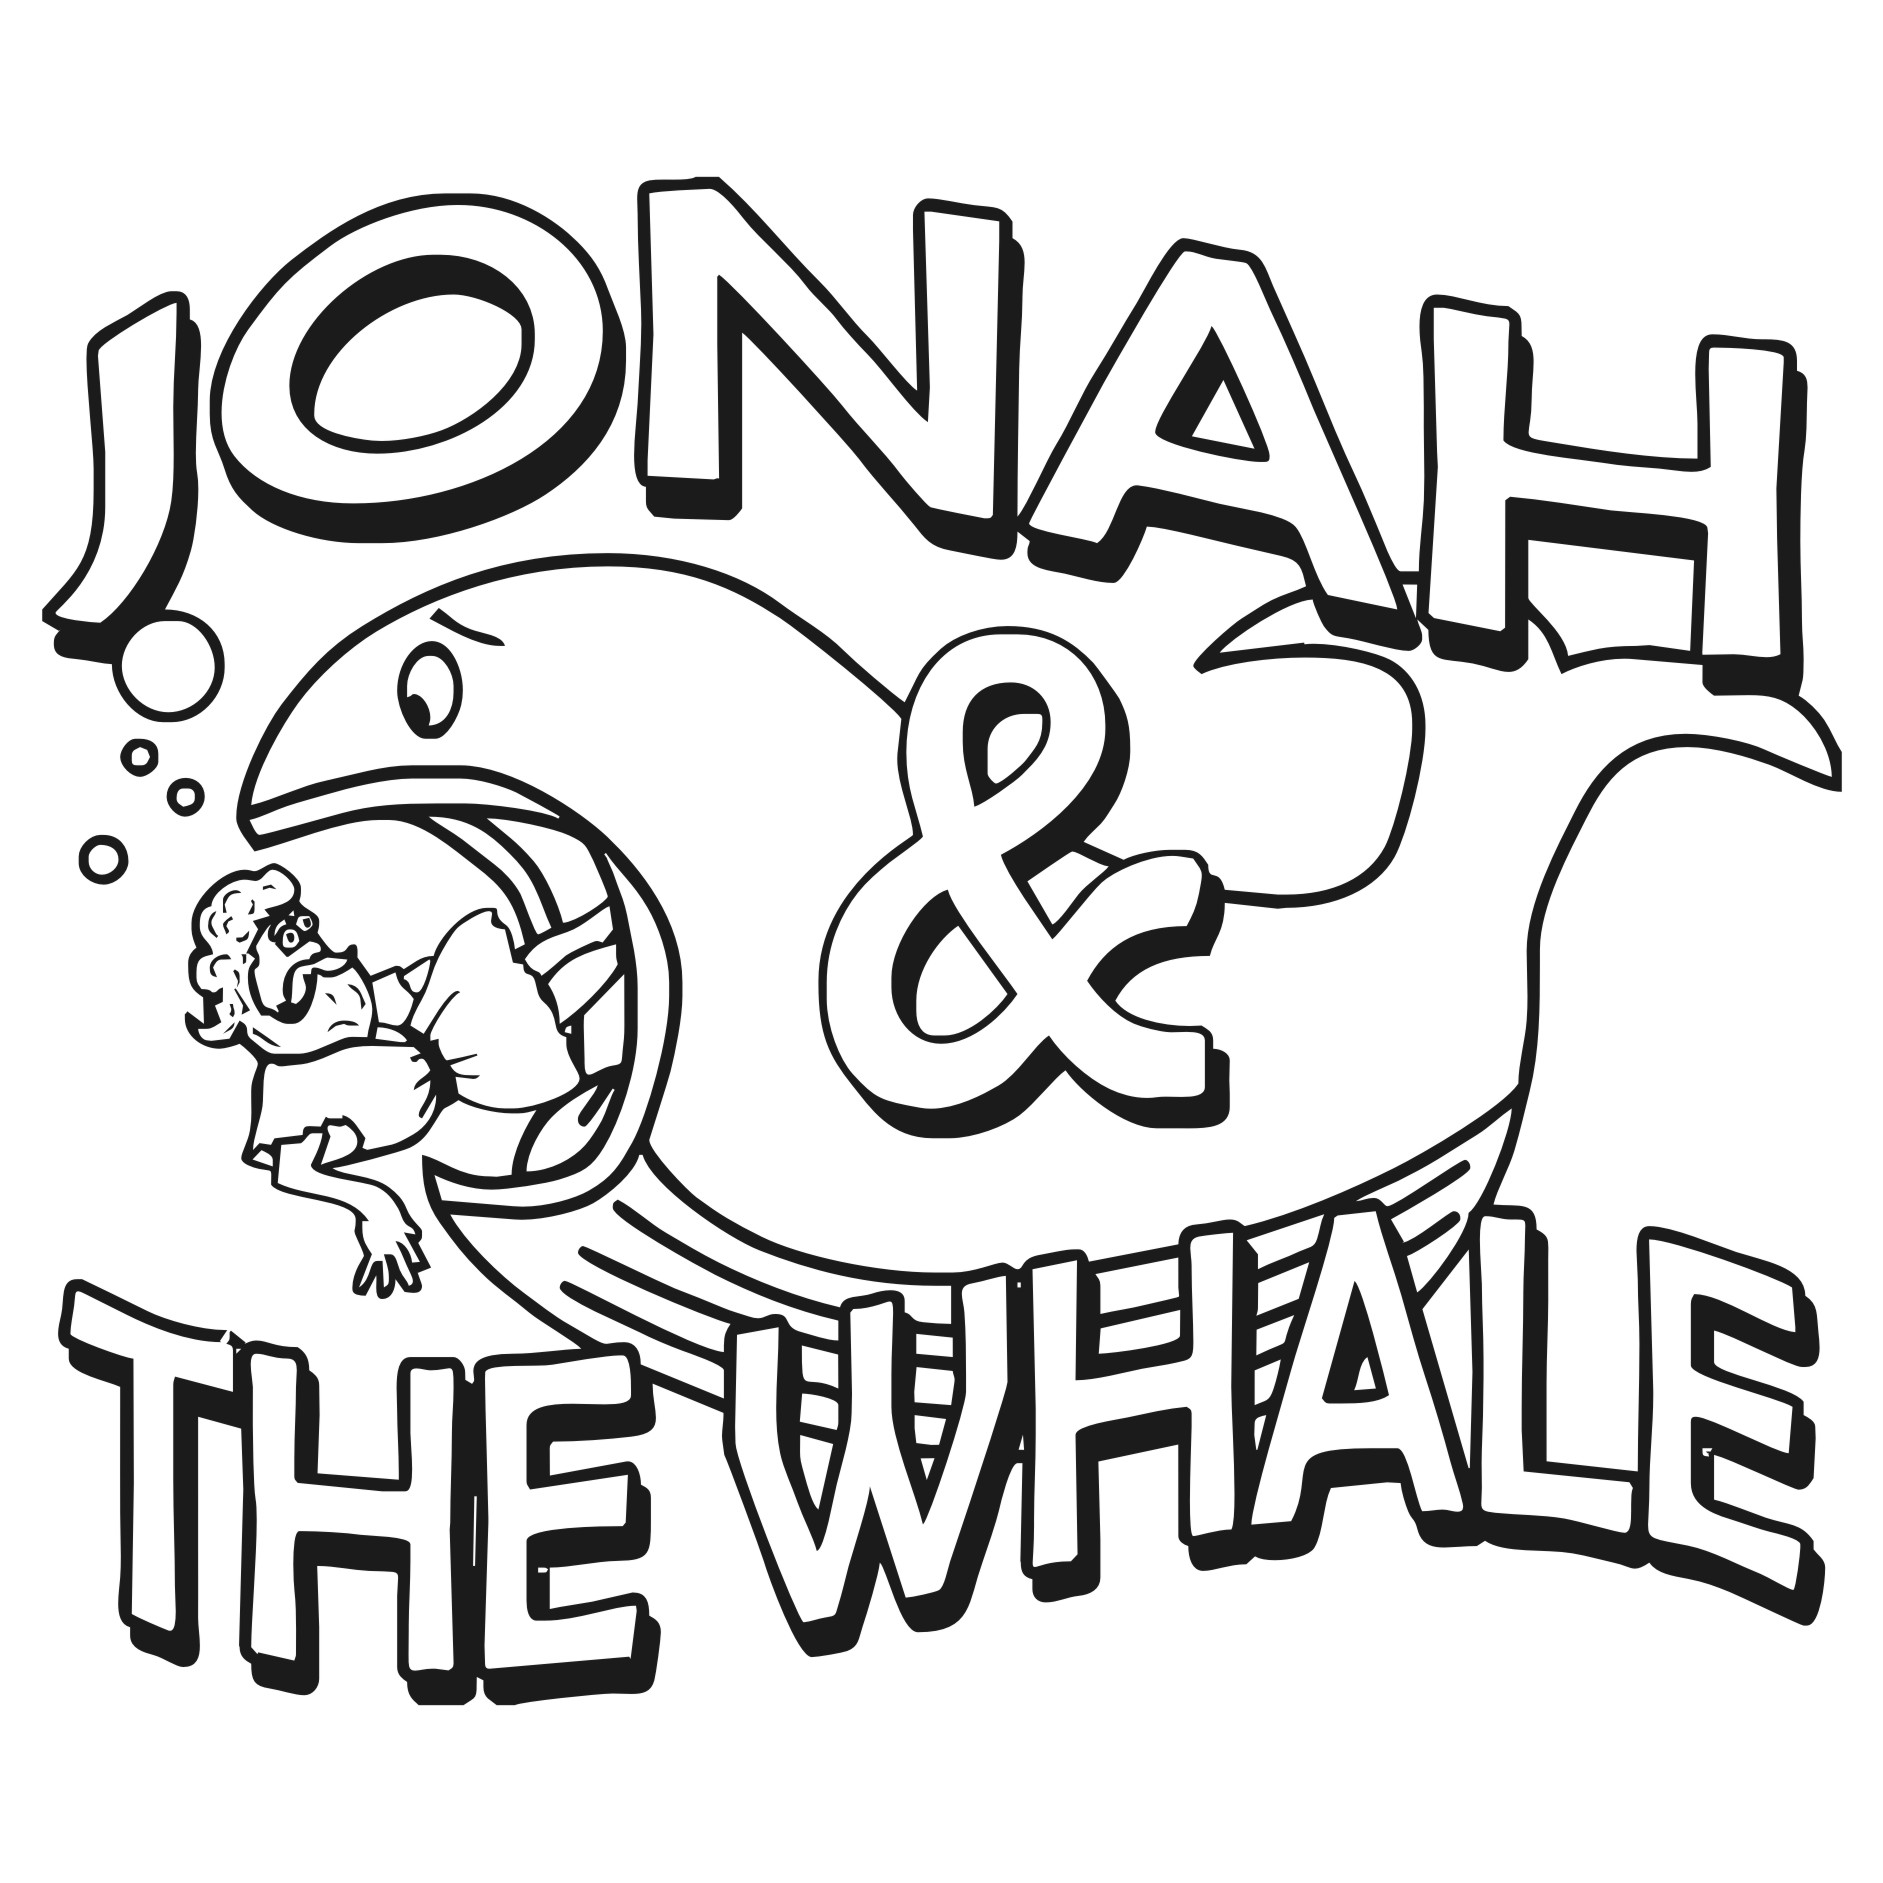 Best Jonah Clipart 18433 Clipartion